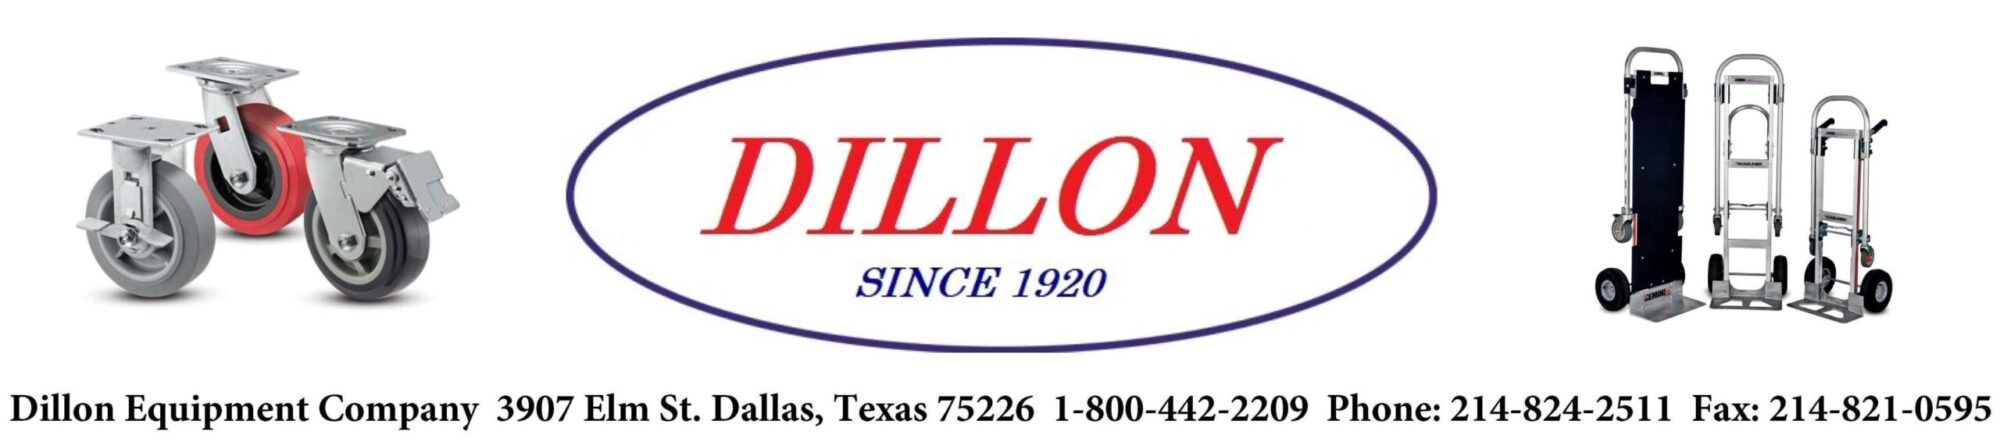 Dillon Equipment – Material Handling Equipment, Casters, Hand Trucks